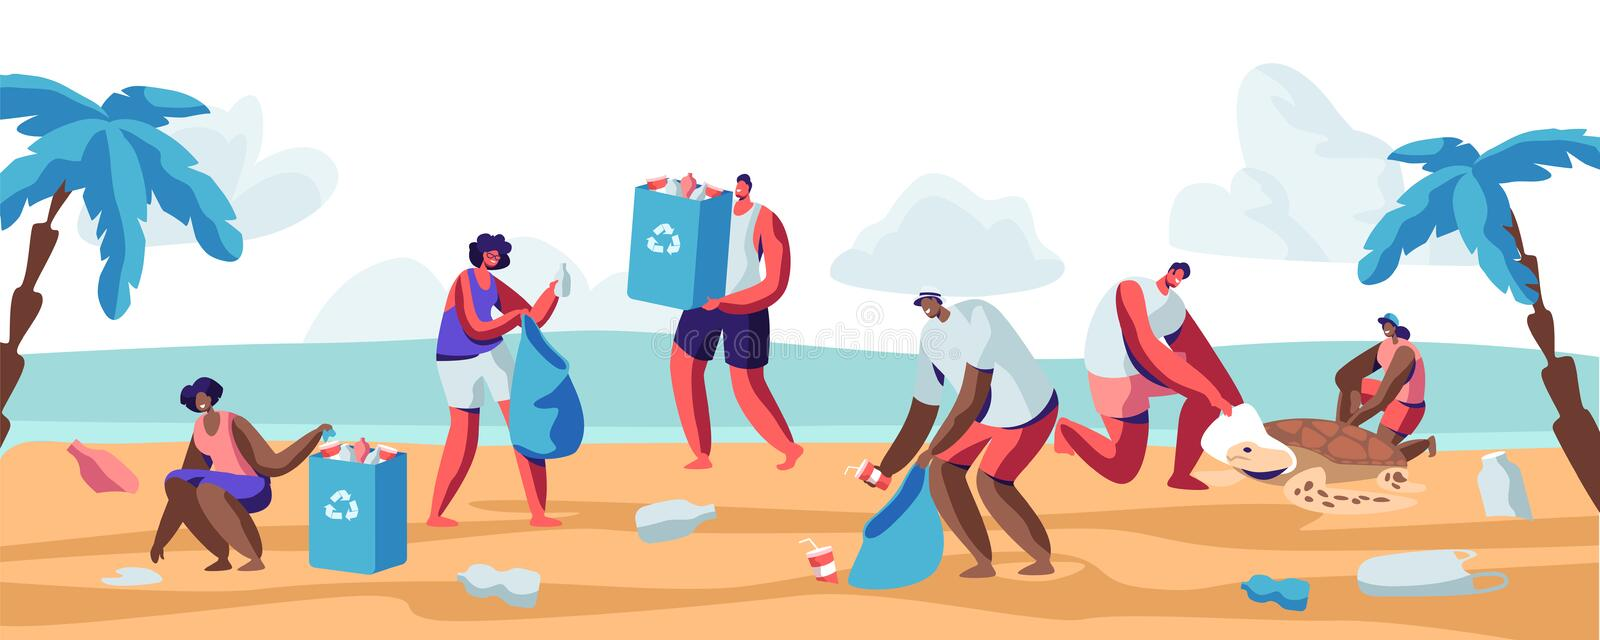 People Collecting Trash into Bags on Beach. Pollution of Seaside with Different Kinds of Garbage. Volunteers Clean Up Wastes. On Ocean Coast. Ecology Protection stock illustration